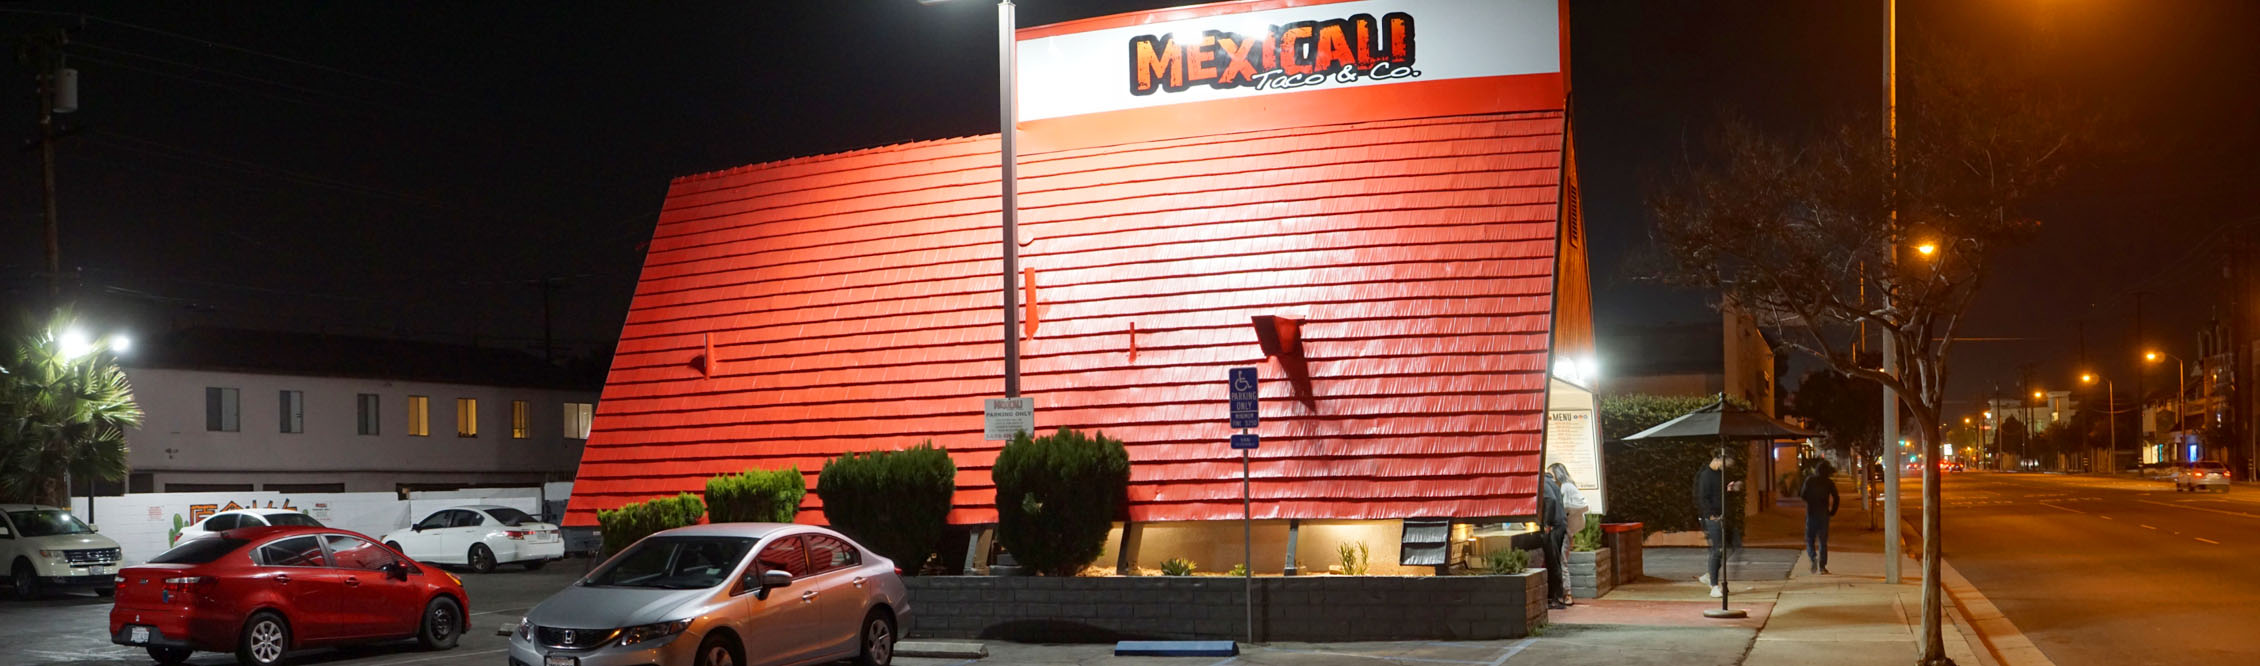 Mexicali Taco & Co Exterior